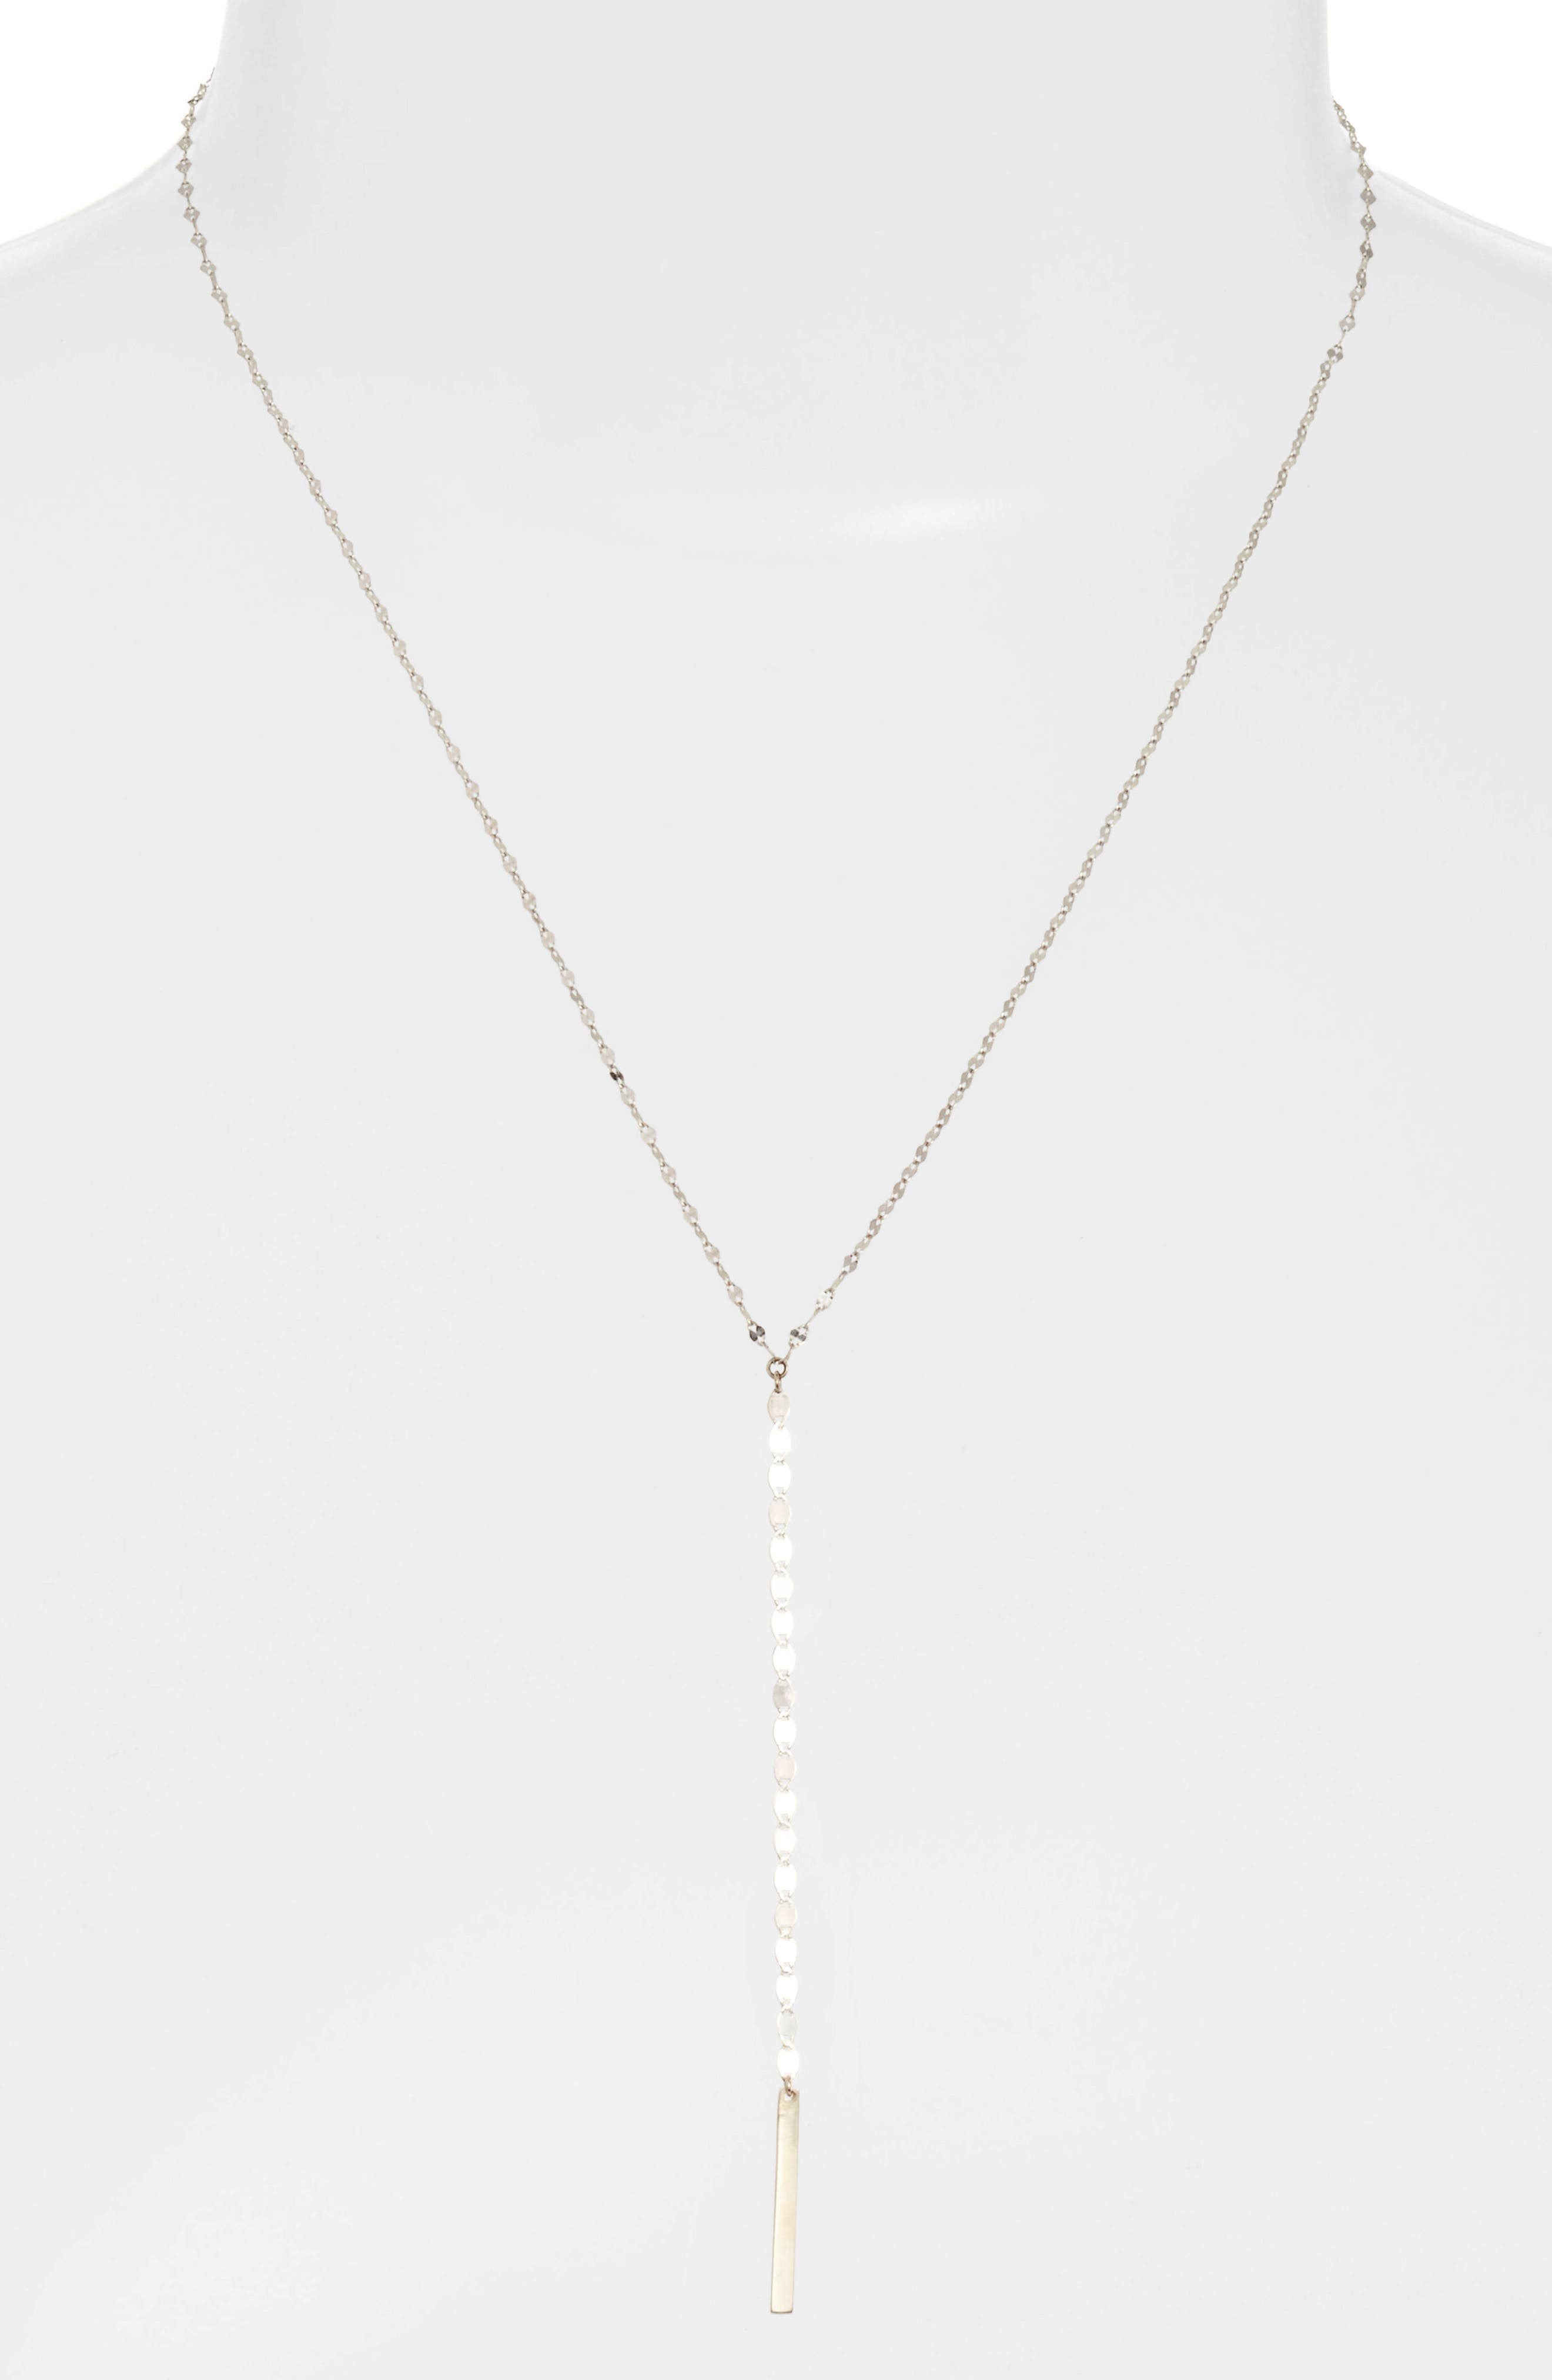 Nude Remix Bar Y-Necklace,                             Main thumbnail 1, color,                             White Gold